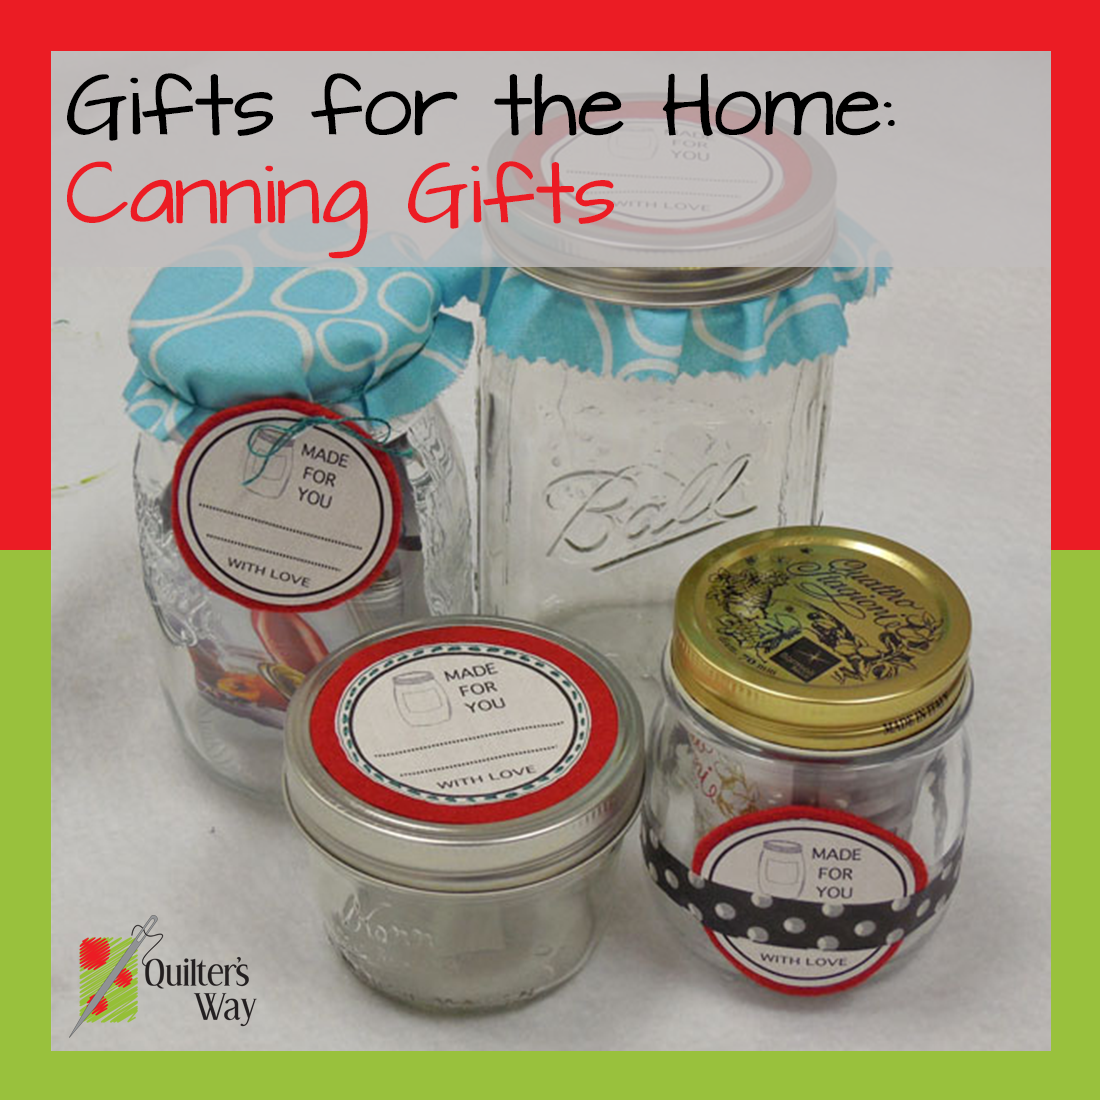 Join Quilter's Way as they blog 31 gift ideas through the month of July. Day 20 demonstrates way to decorate handmade canned gifts.